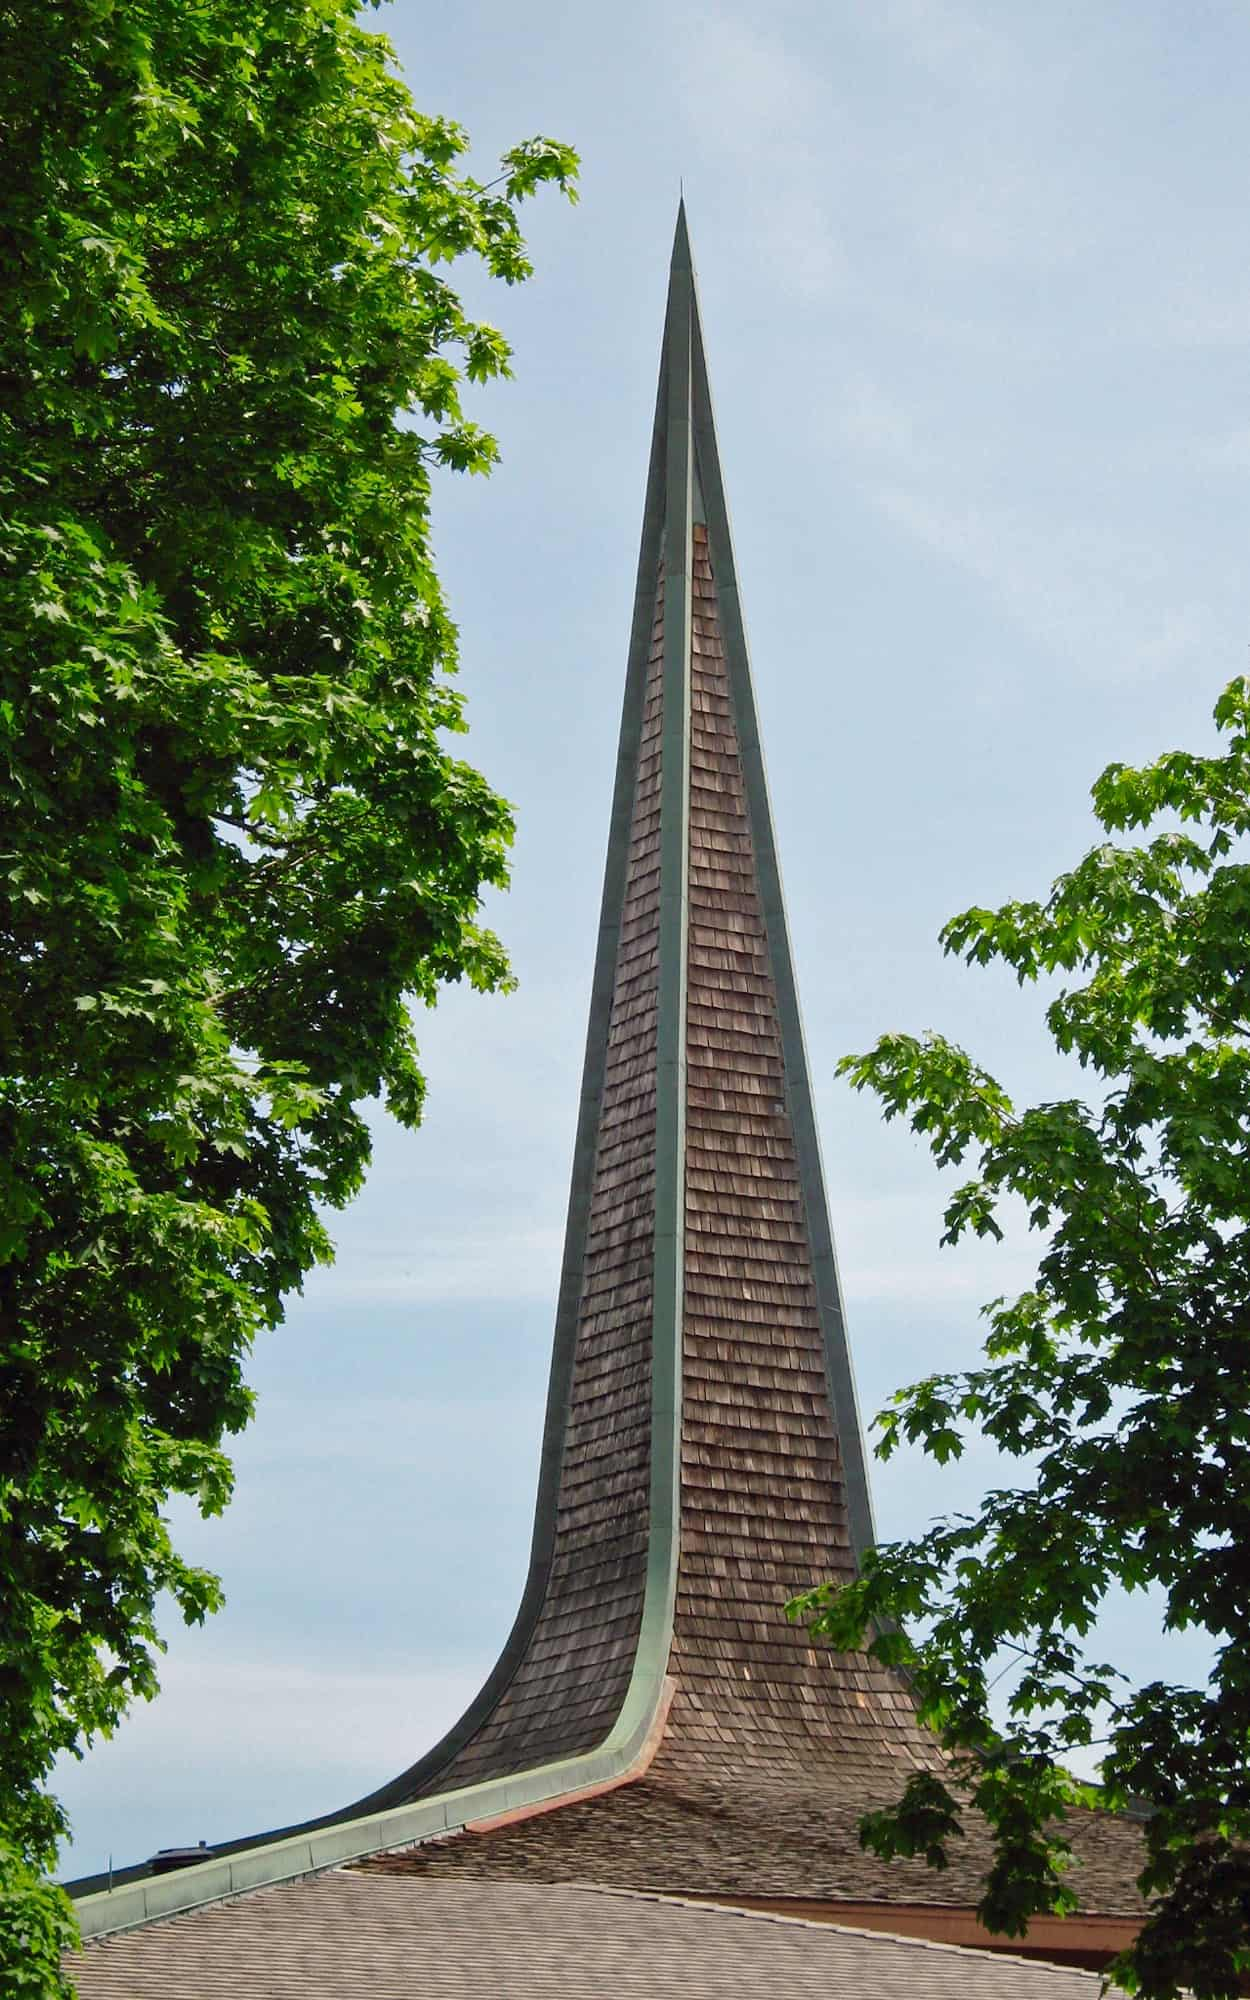 Exterior view of the cedar and copper cladding on the spire